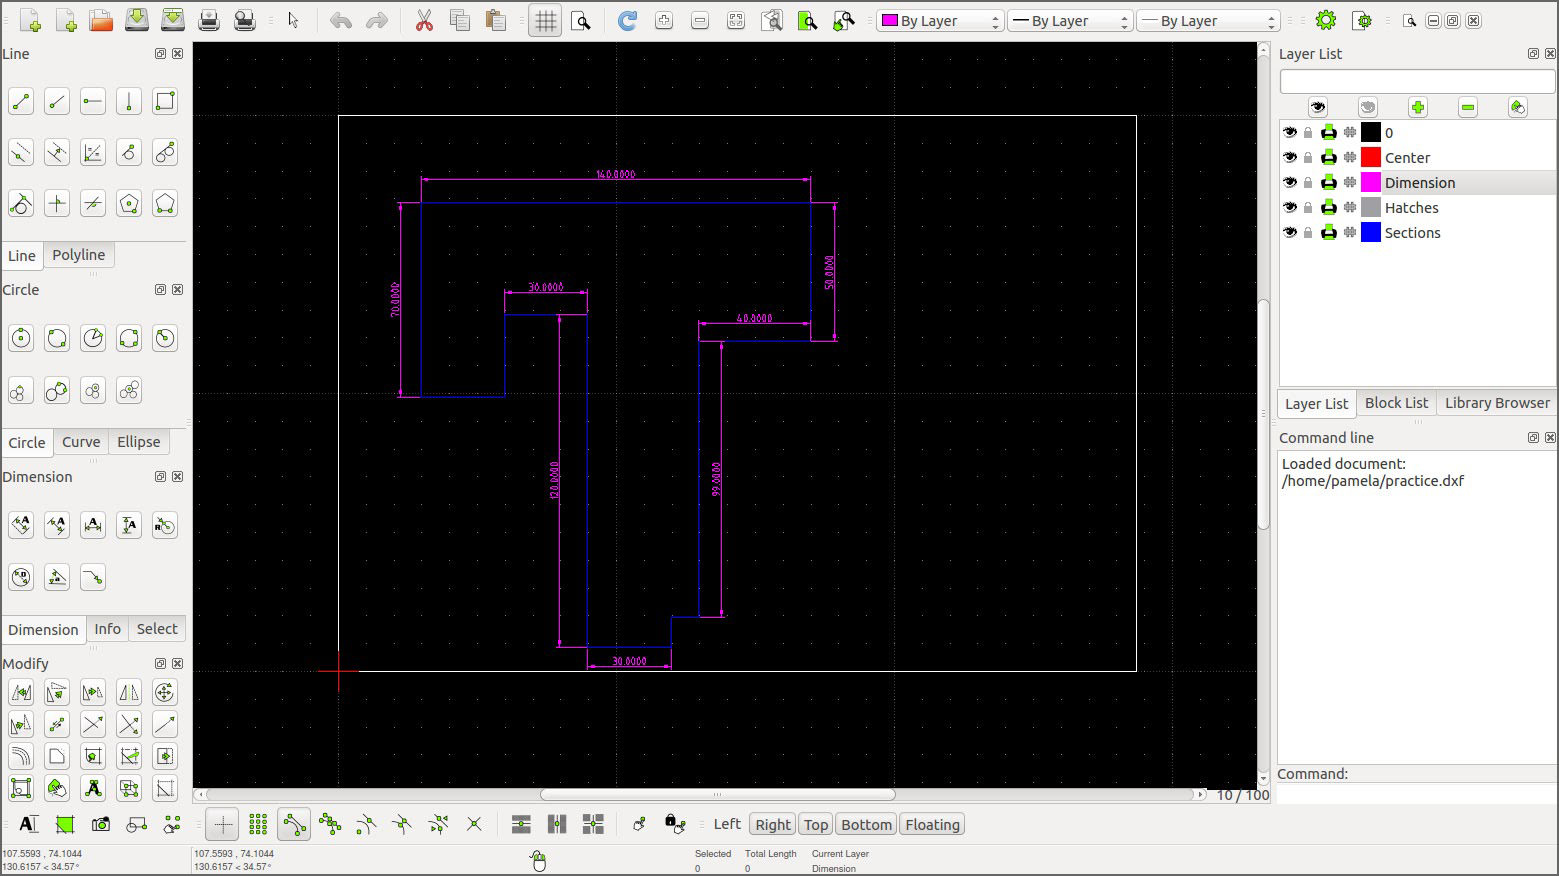 autocad 2013 free trial serial number